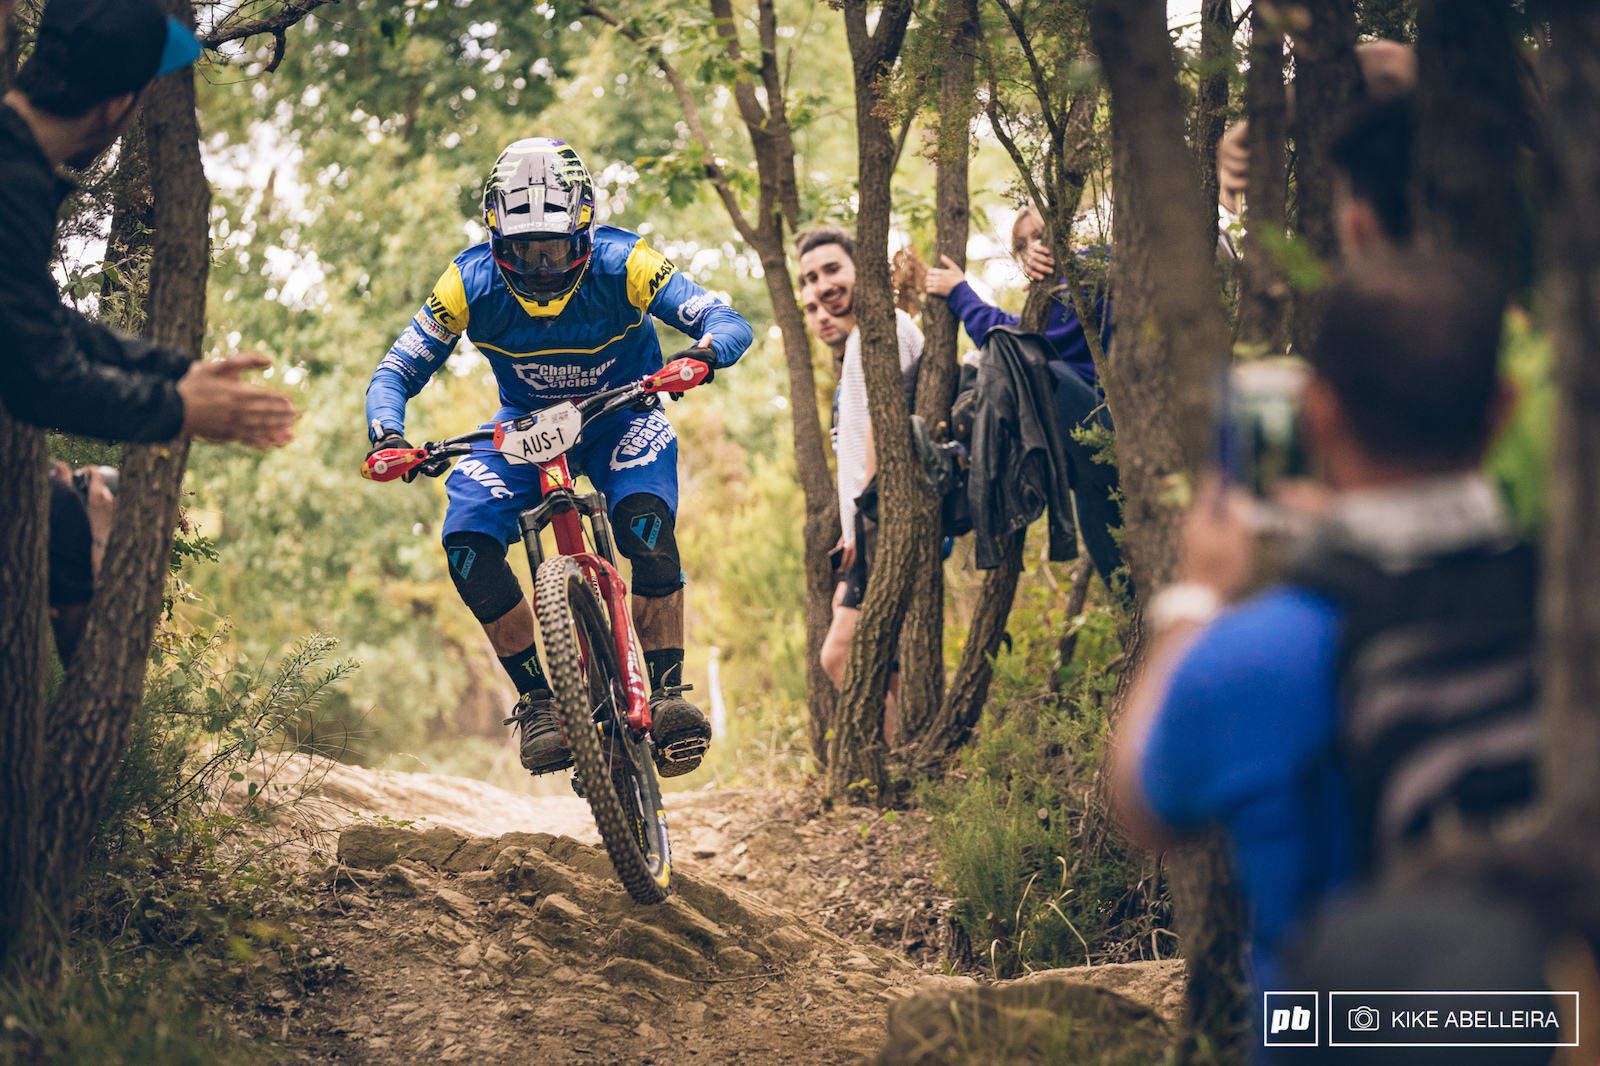 Sam Hill did not hold the winning pace from last week in Zermatt and today he struggled a bit with the pedalling sections.